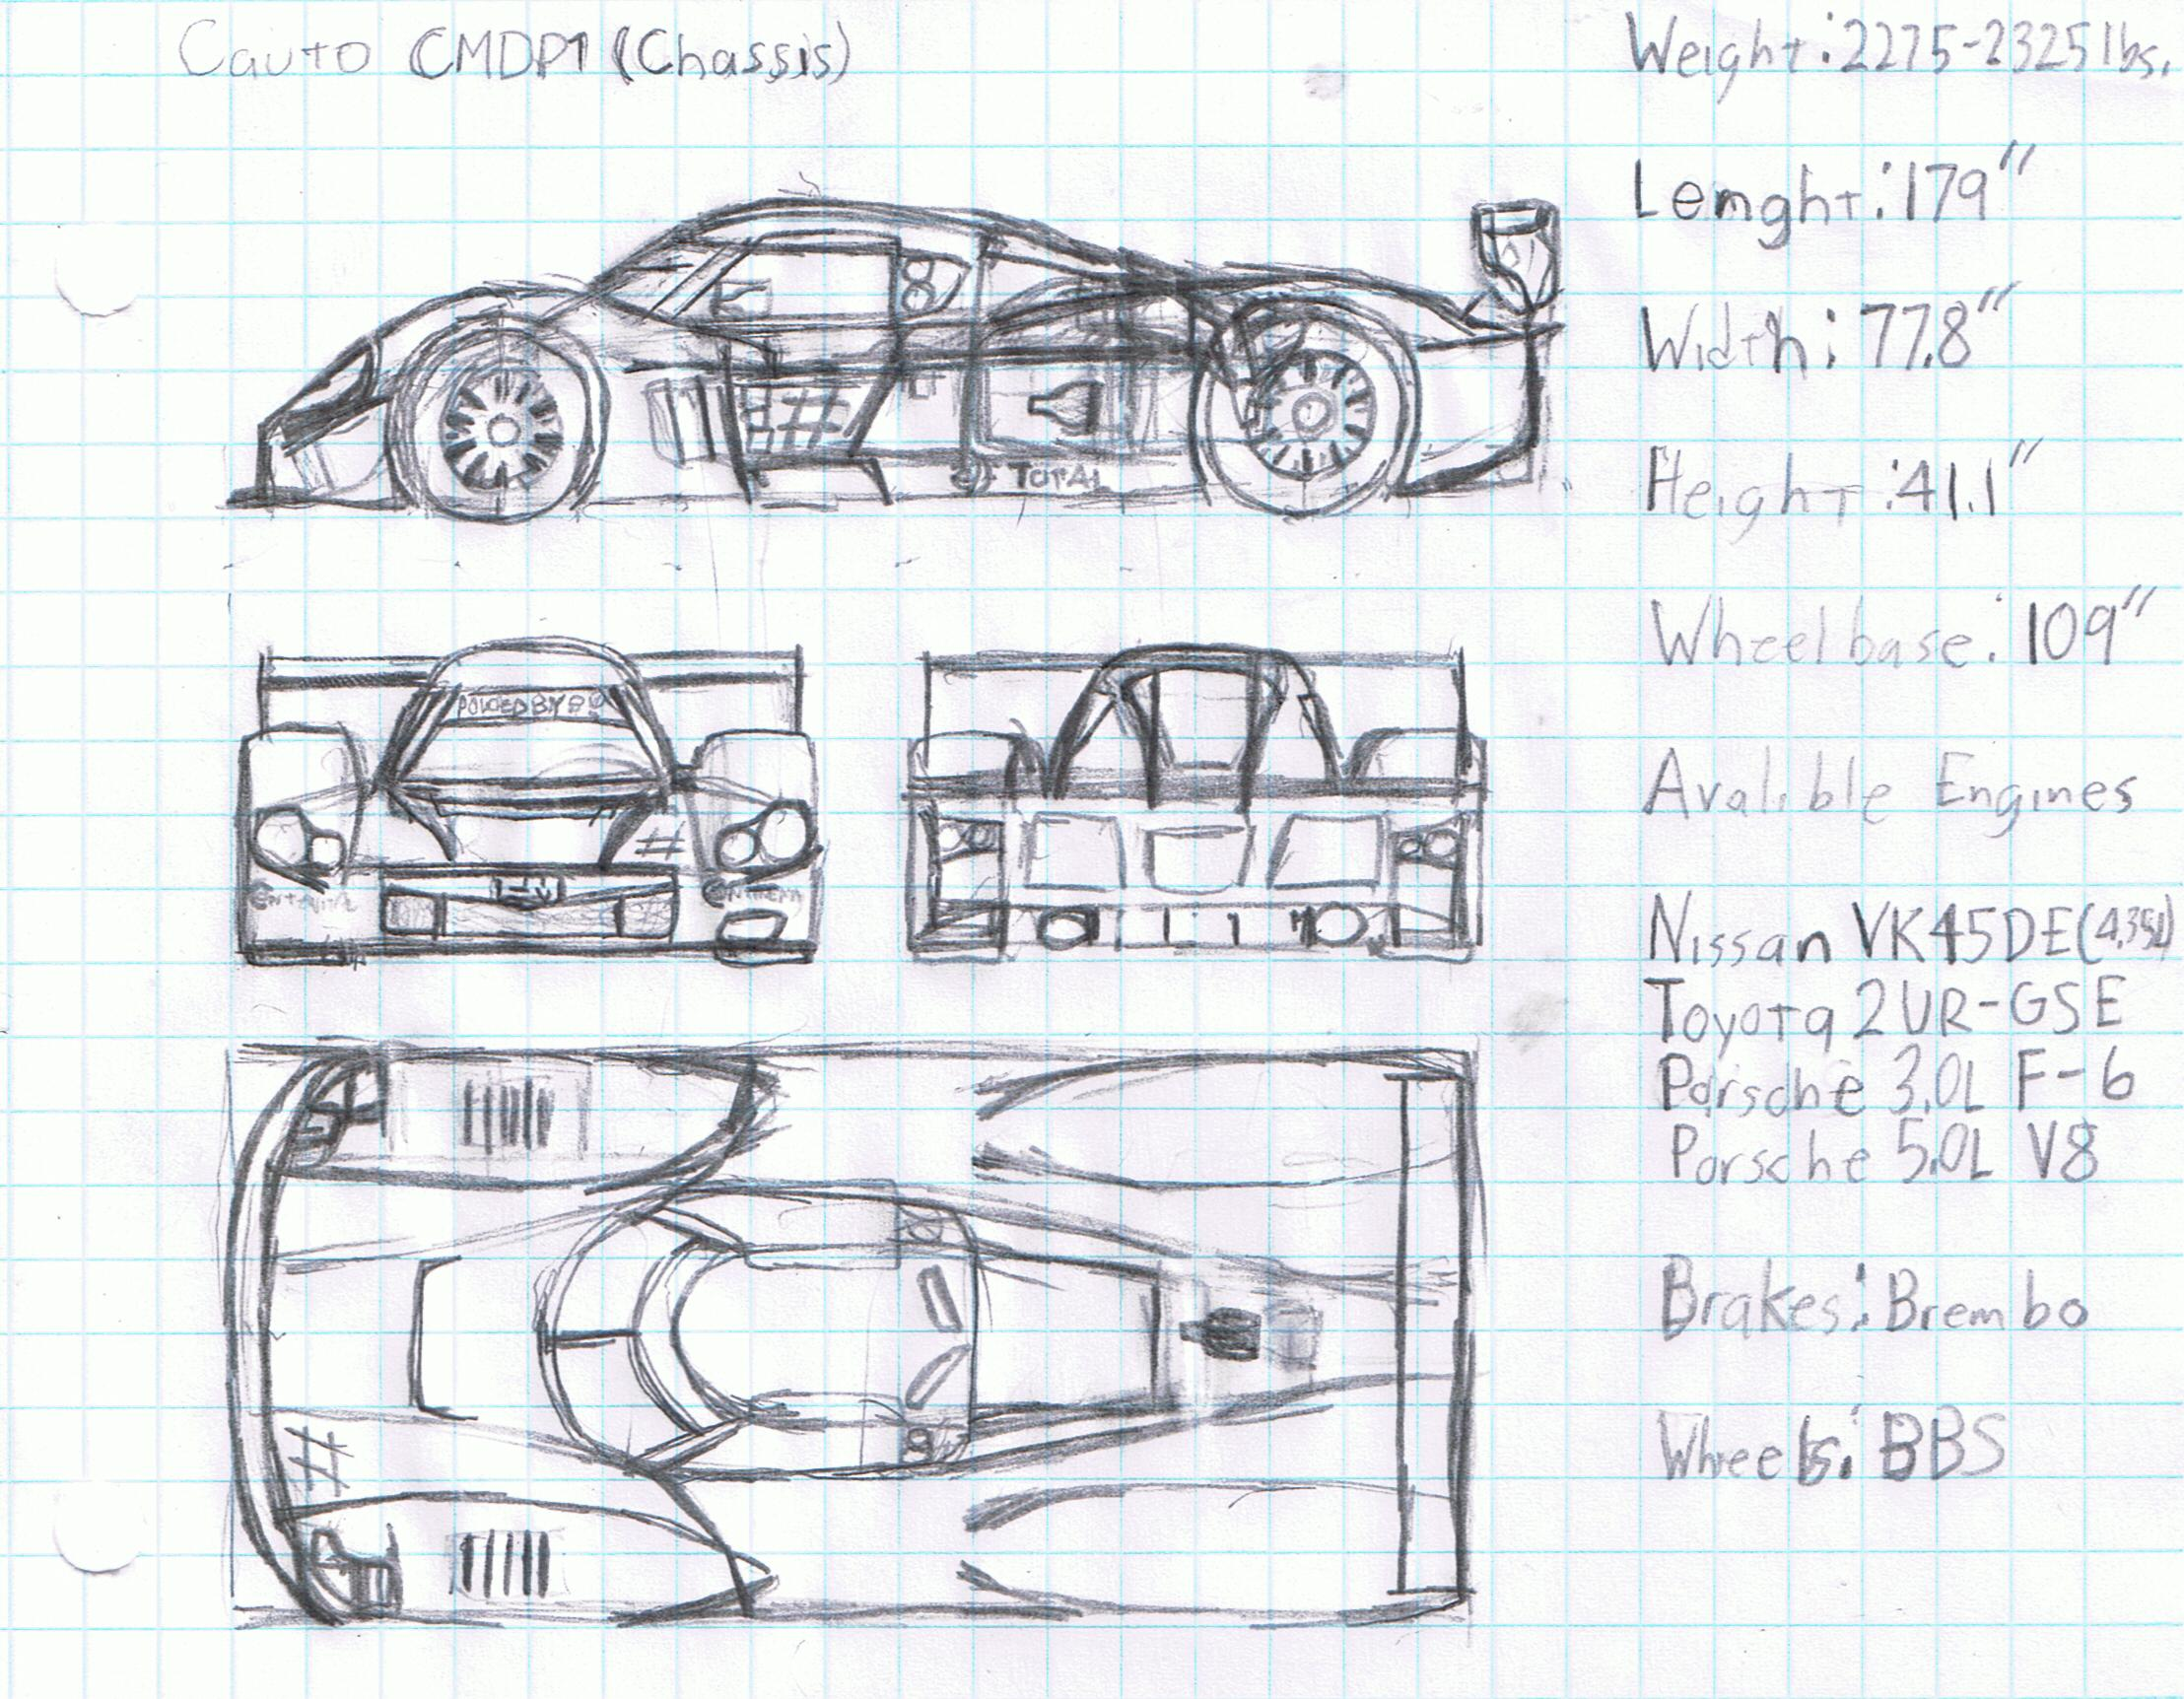 Cauto Cmdp Gen 3 Daytona Prototype Design By K9rasart